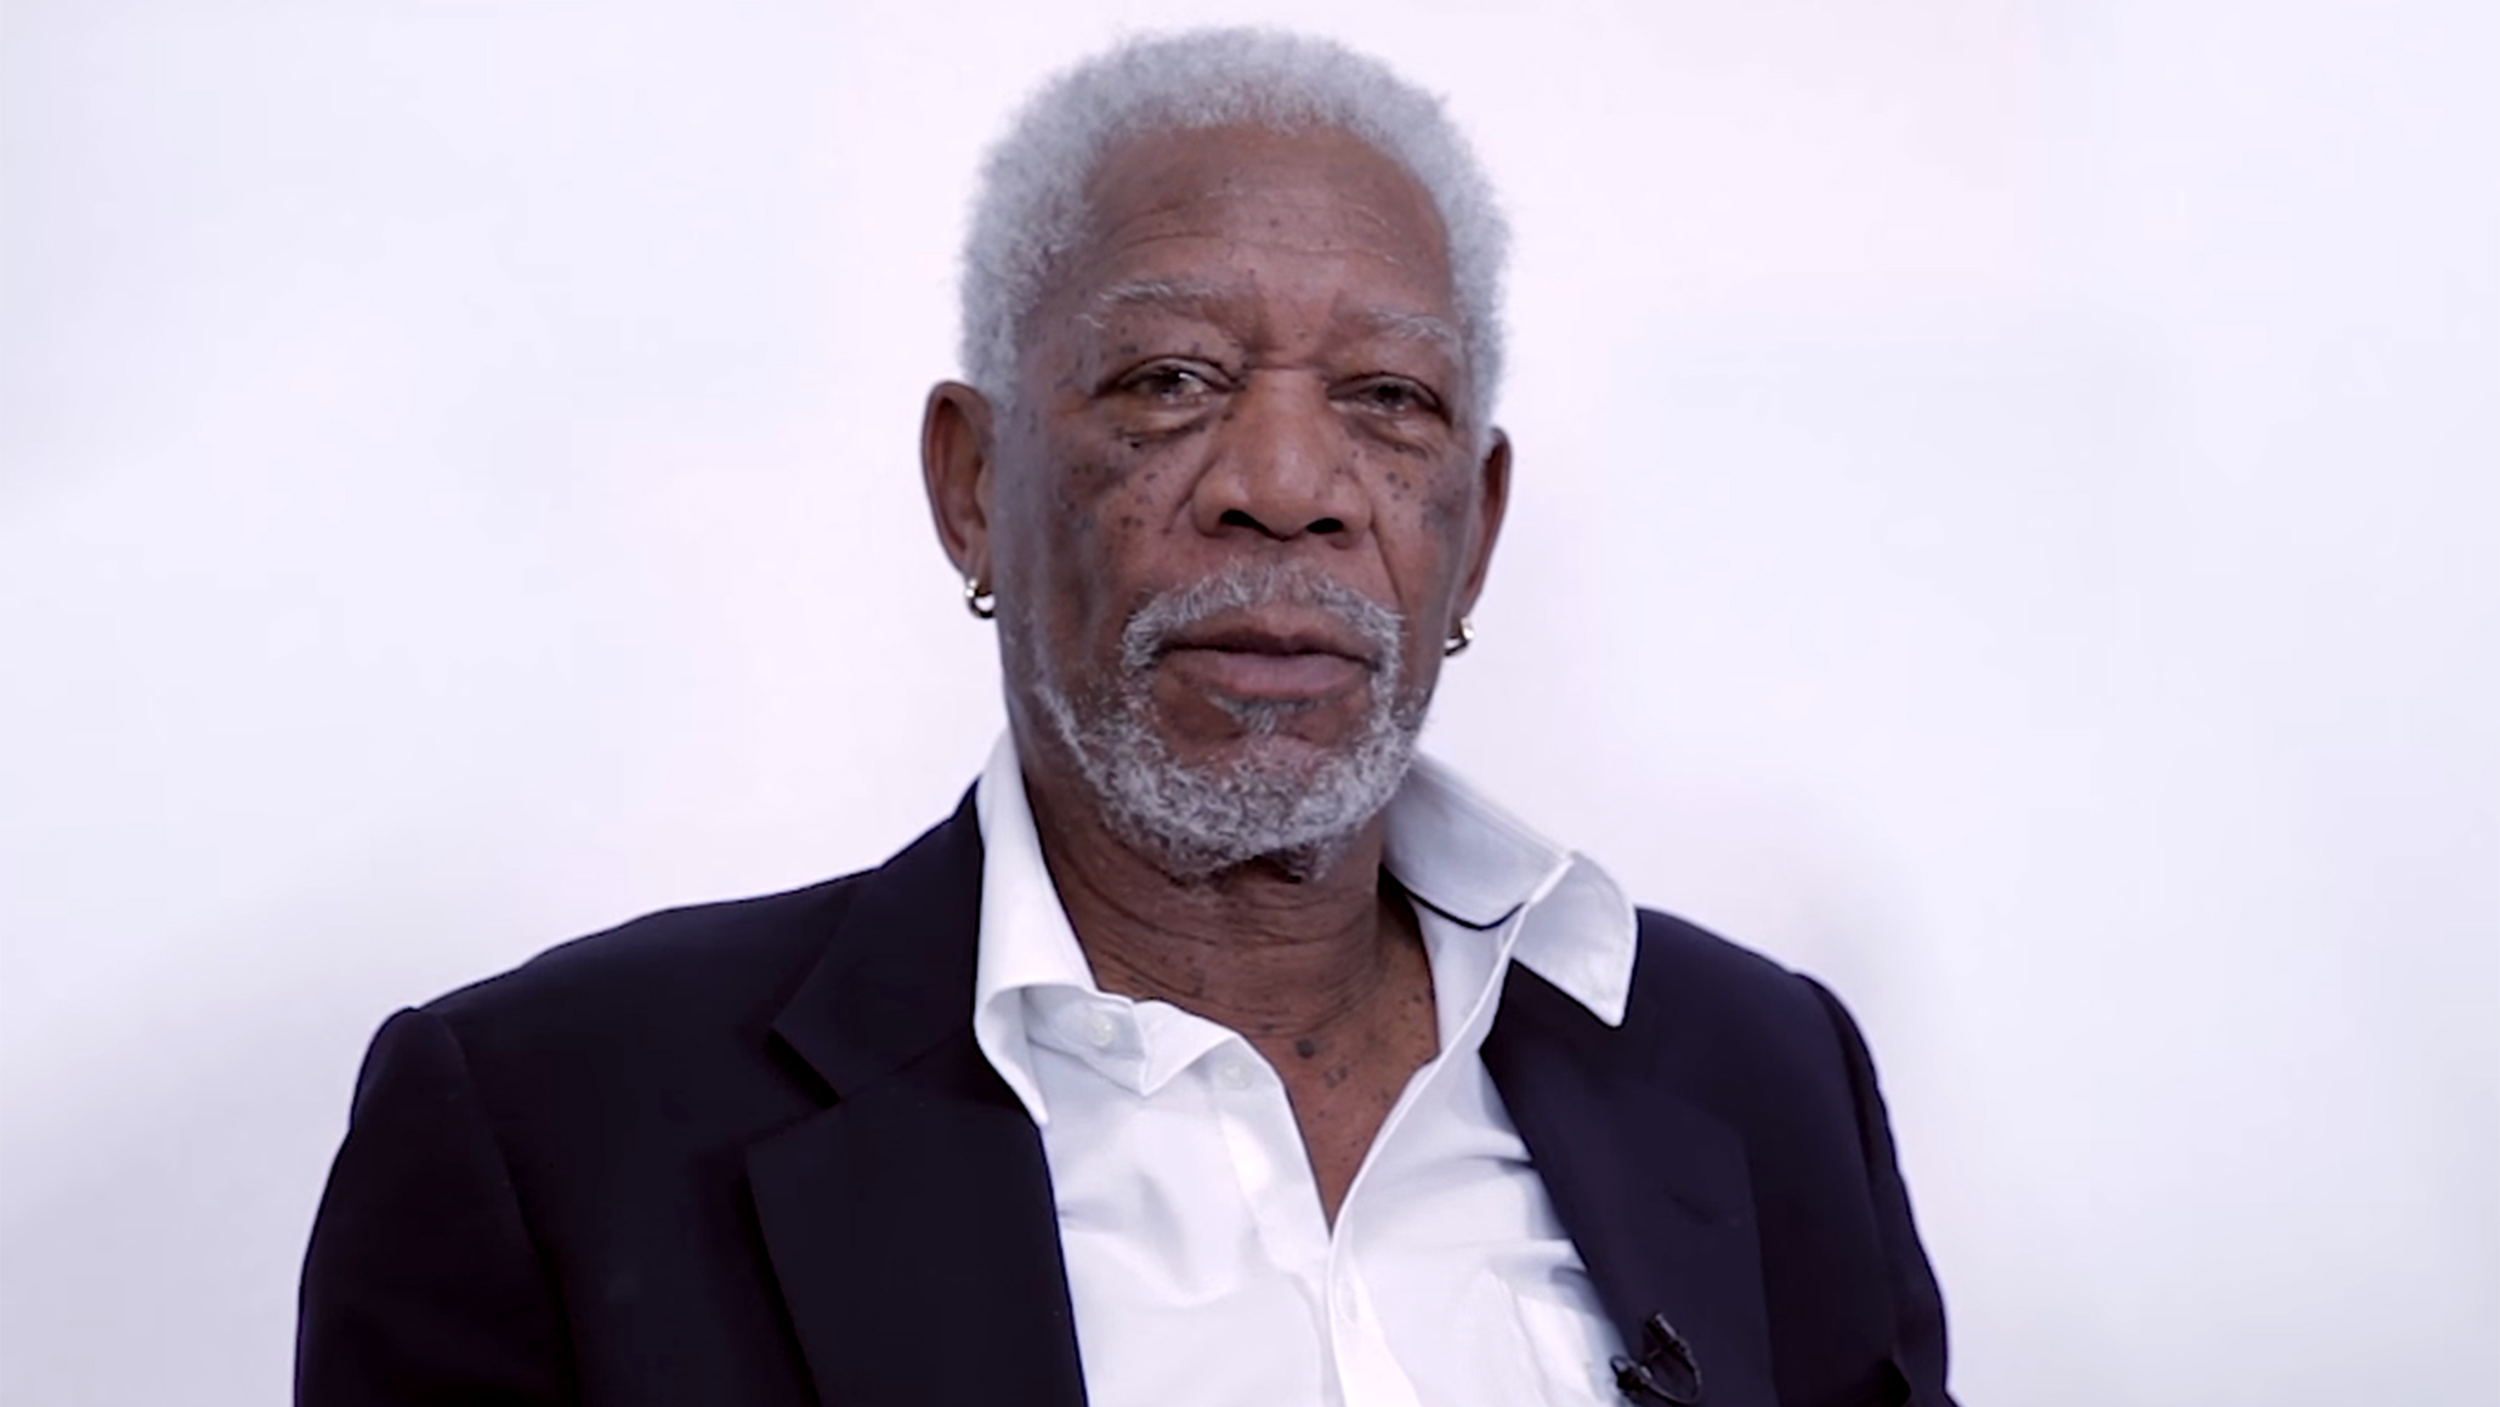 Morgan Freeman's dramatic reading of a Justin Bieber song is